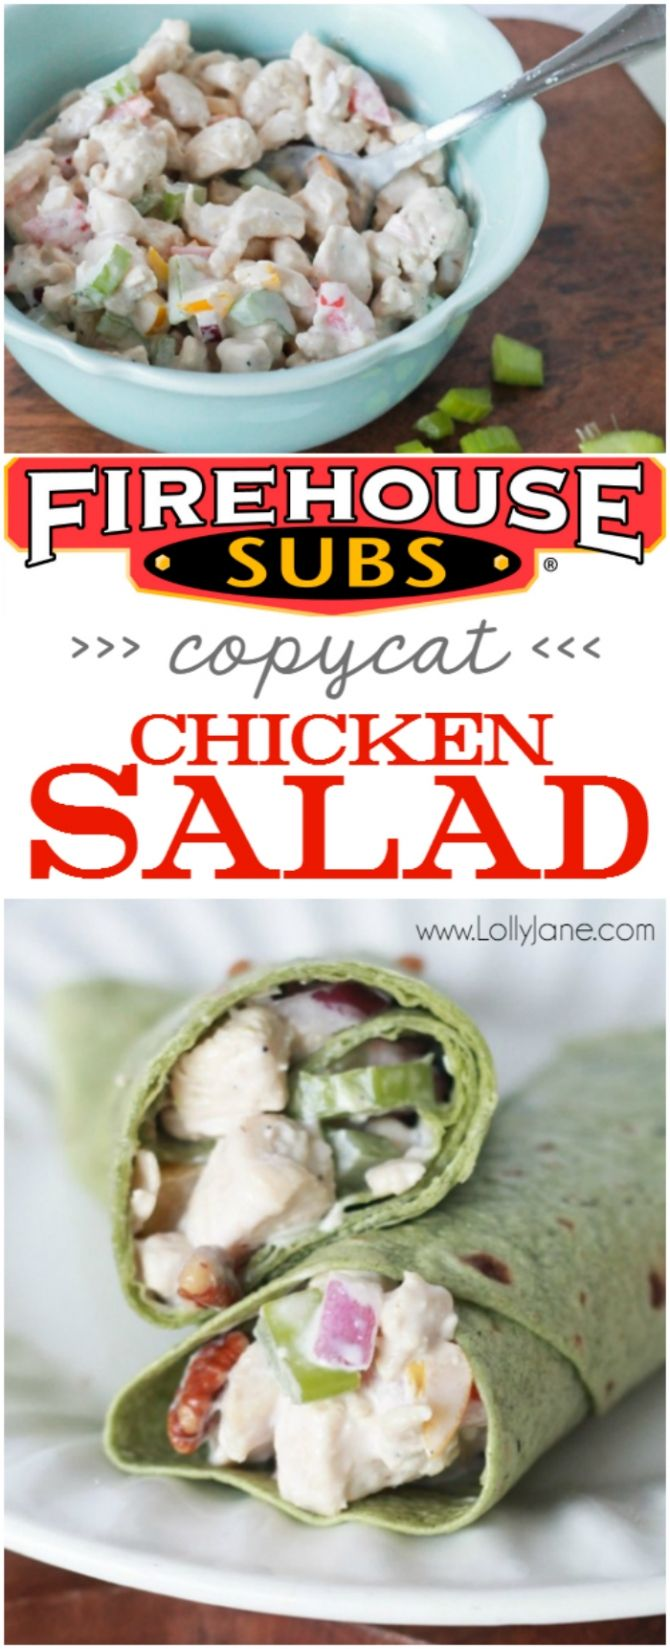 Firehouse Subs Copycat Chicken Salad, better than Mom used to make! Full of protein, veggies and low calories! Great dinner or snack recipe.